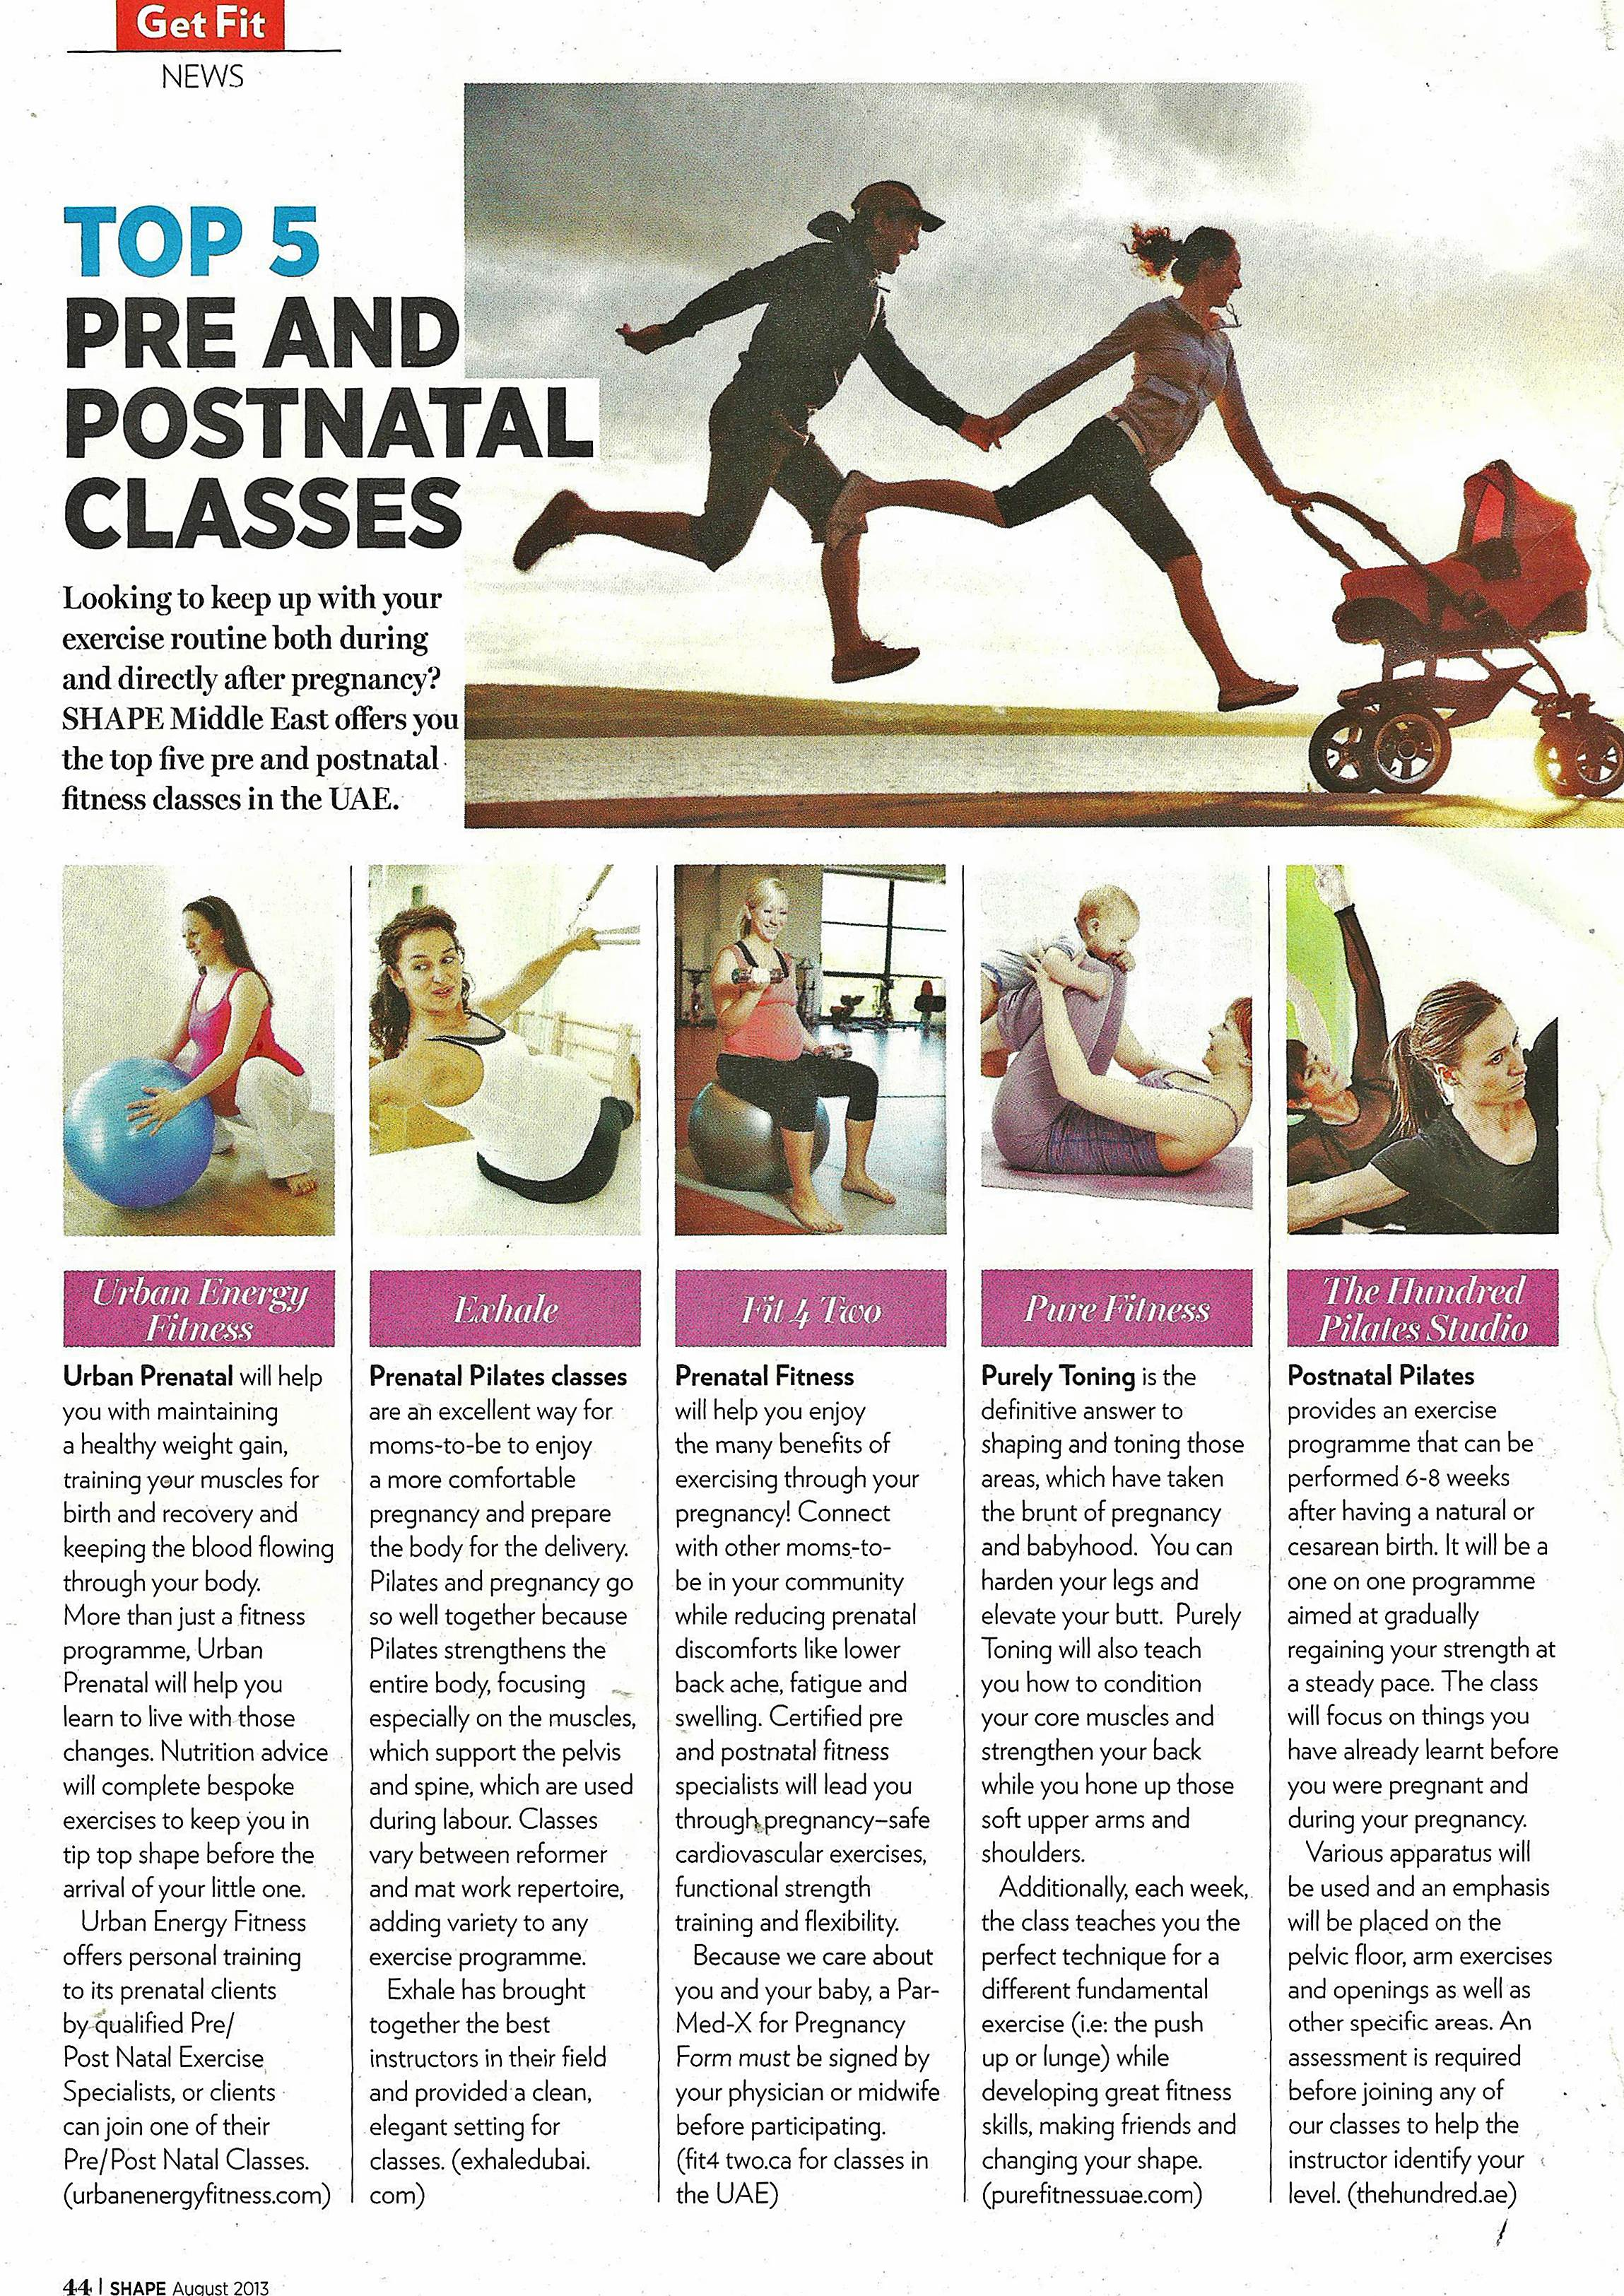 Top 5 Pre and PostNatal Classes by Time Out Dubai